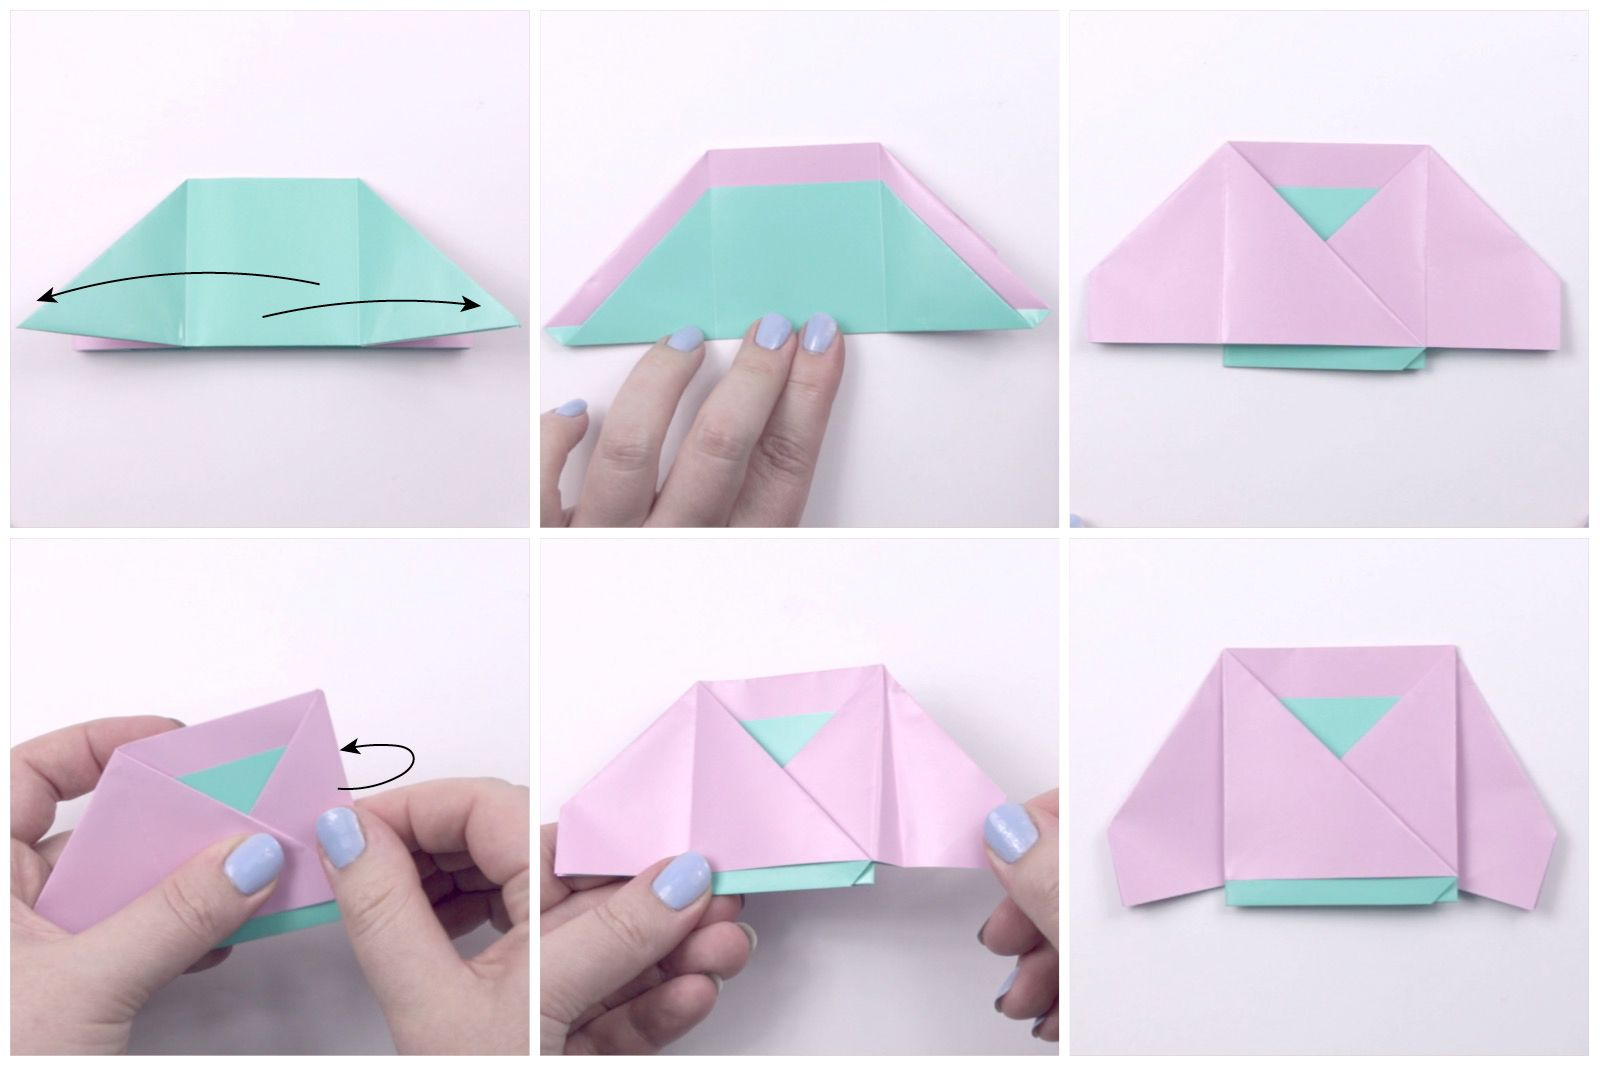 How to Make Origami Dress (Style 2) - Easy Origami Tutorial for ... | 1066x1600